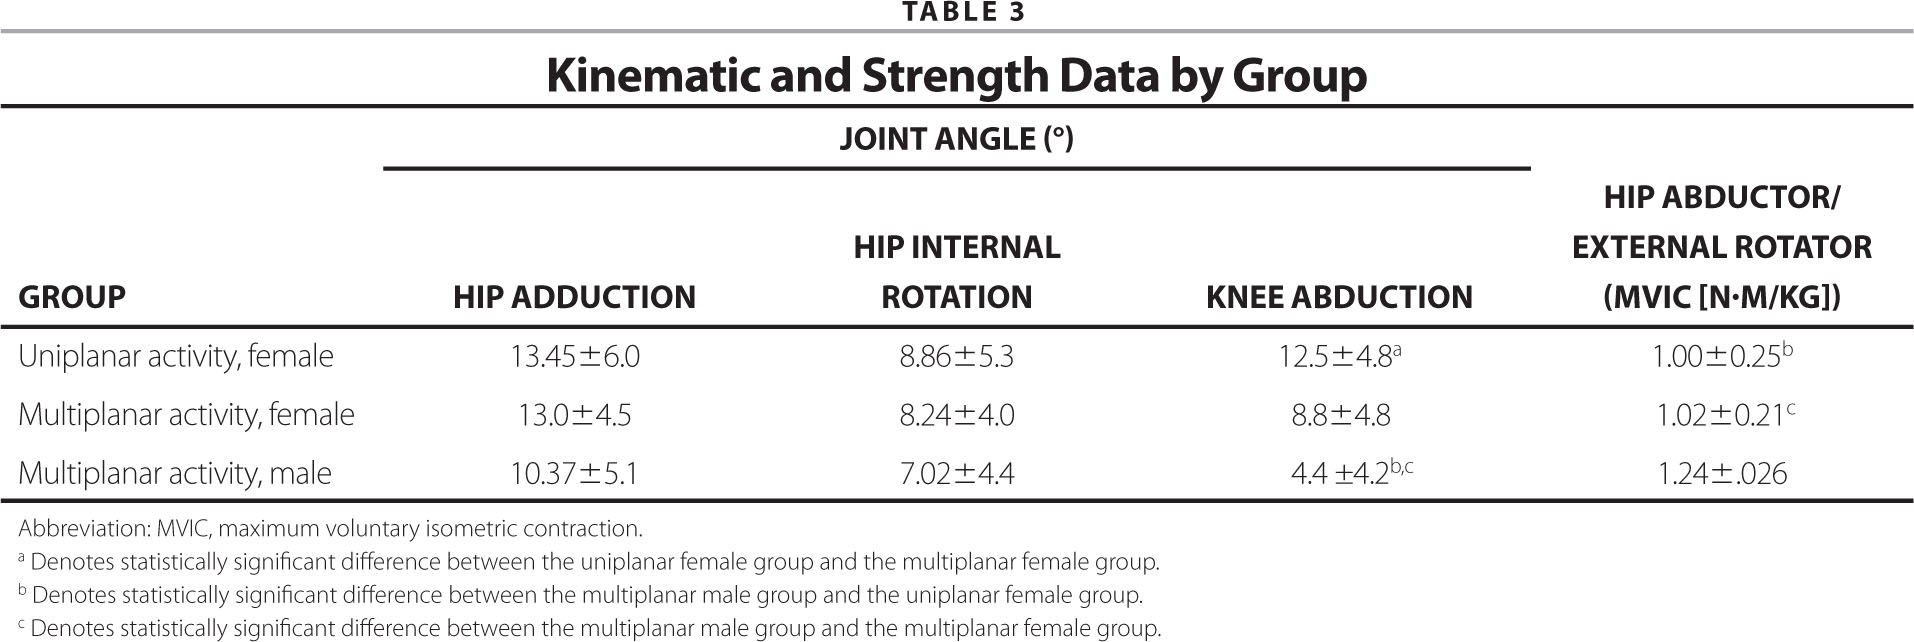 Kinematic and Strength Data by Group